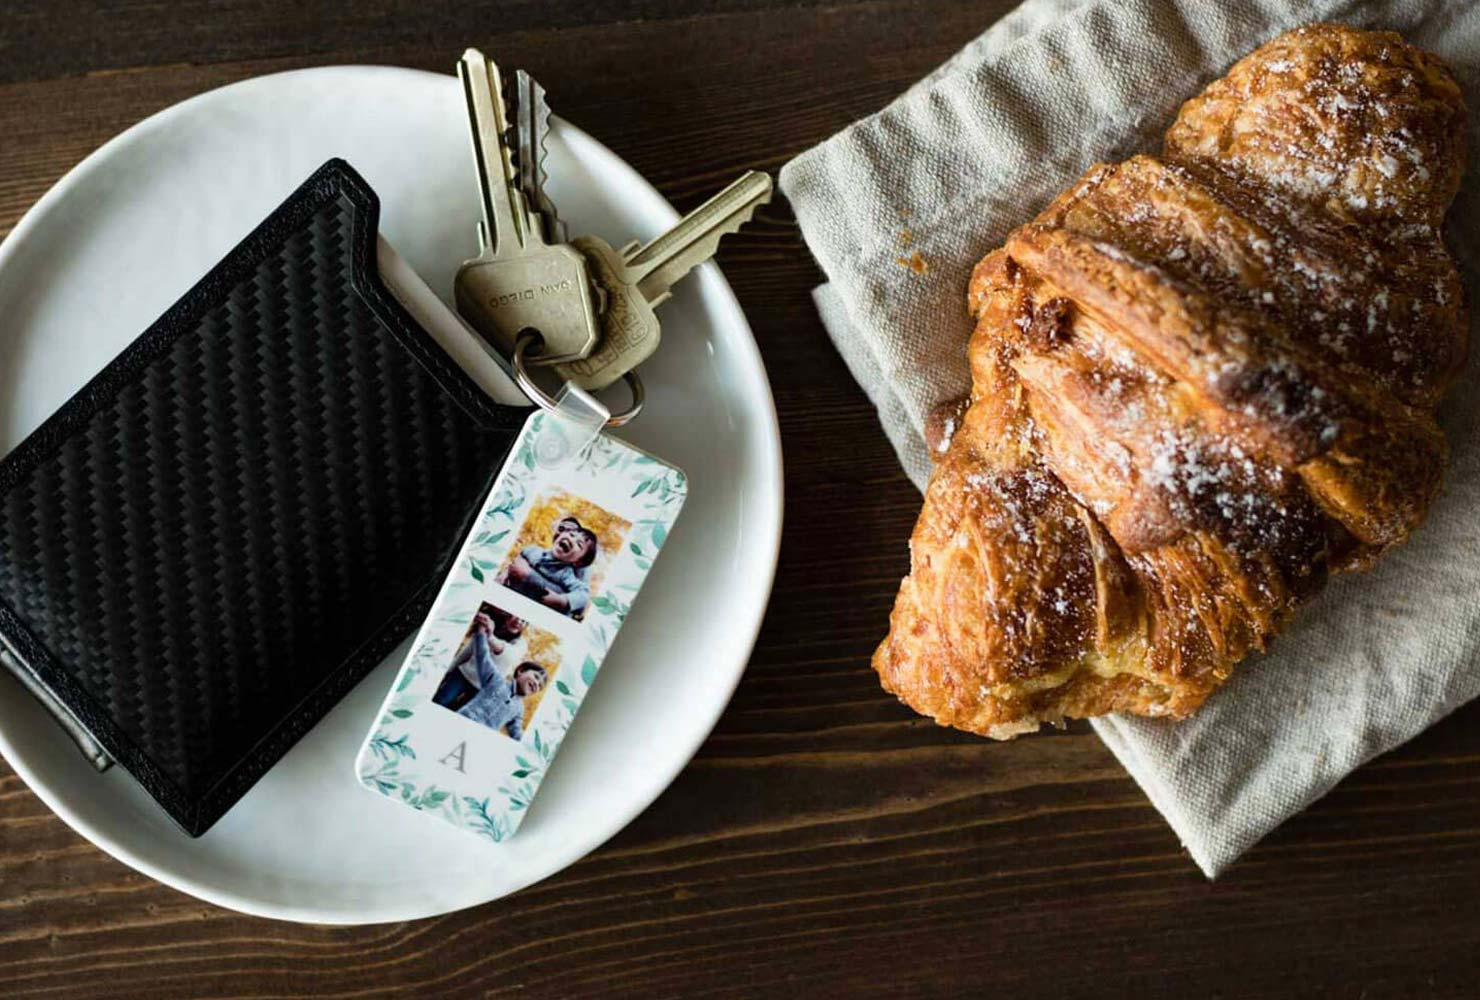 Photo keychain and wallet on a table with a croissant.